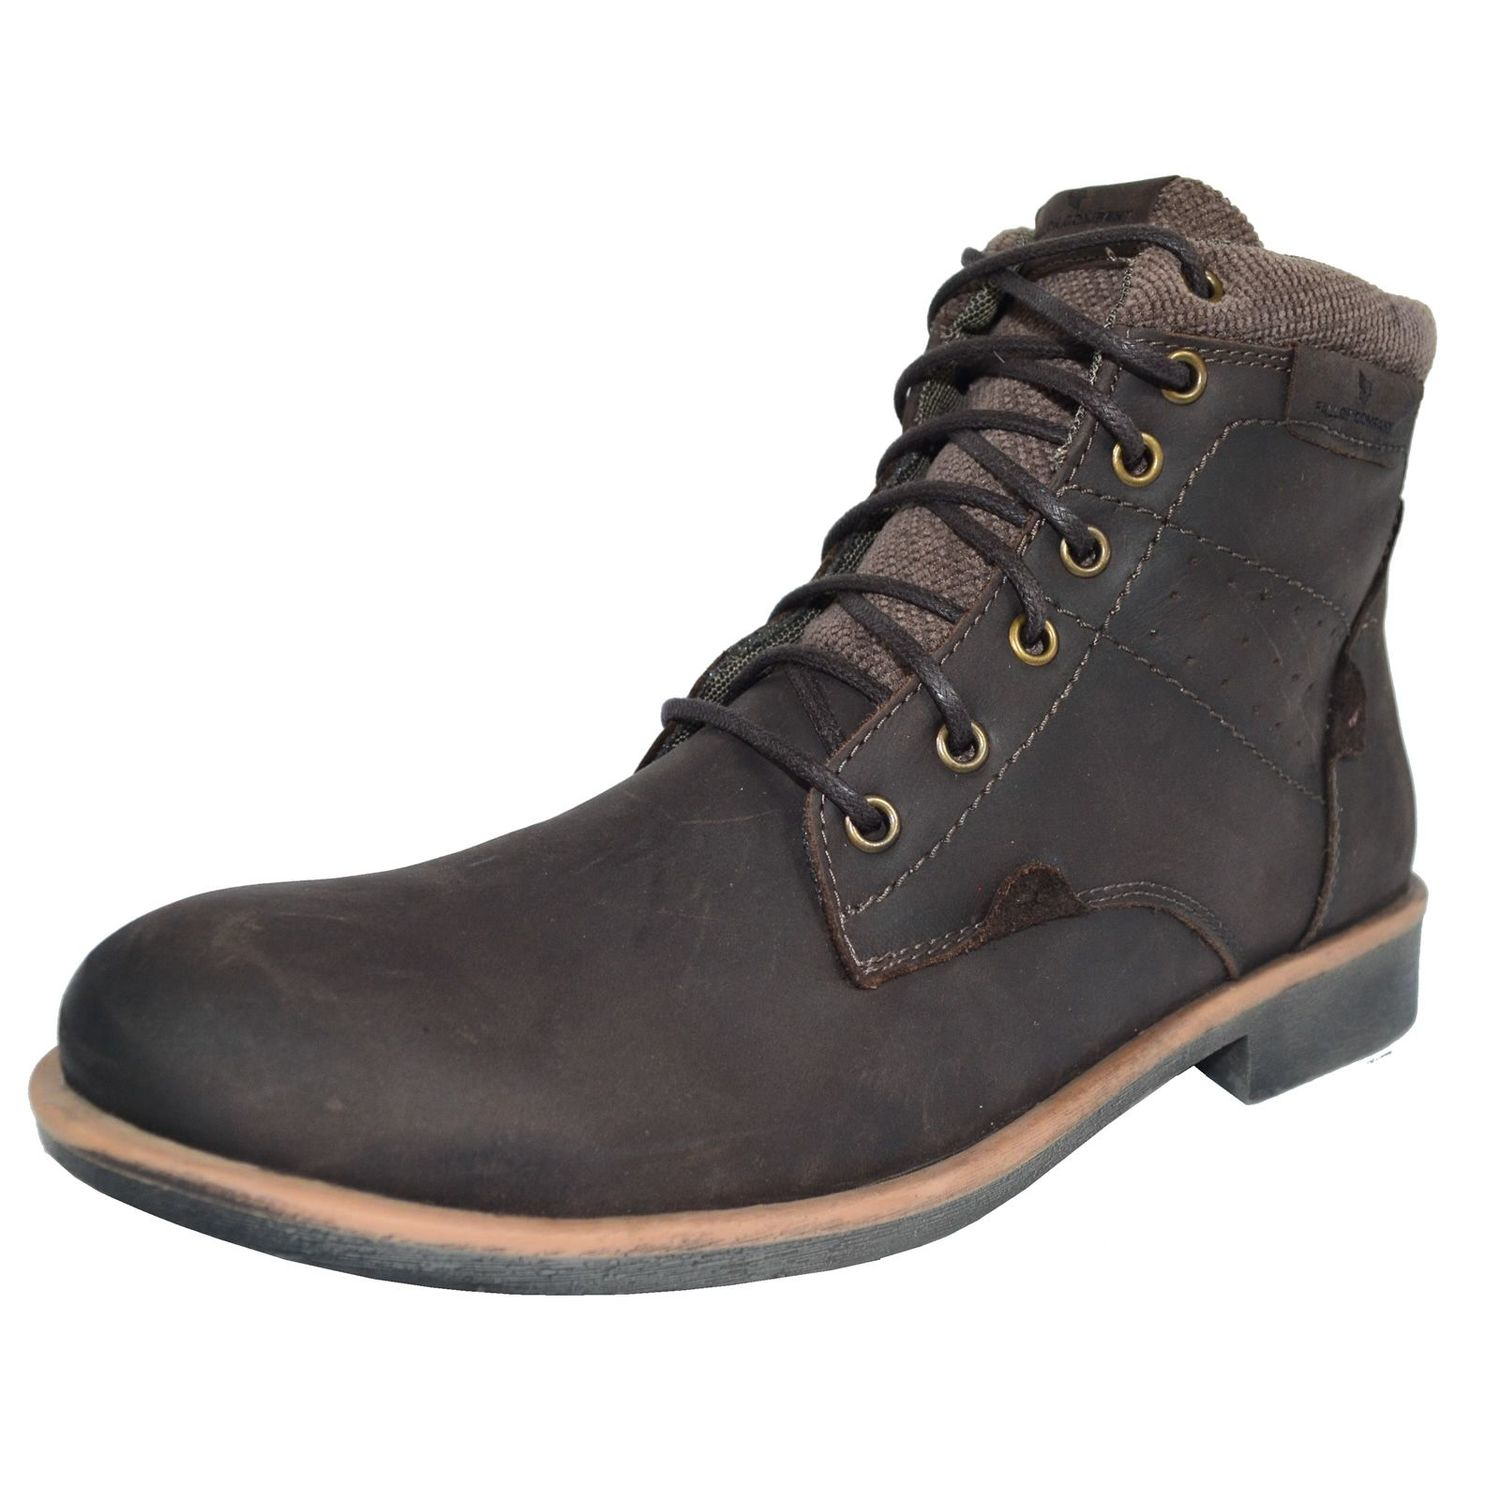 Bota Coturno Fallon & Co. Ride Hard Café